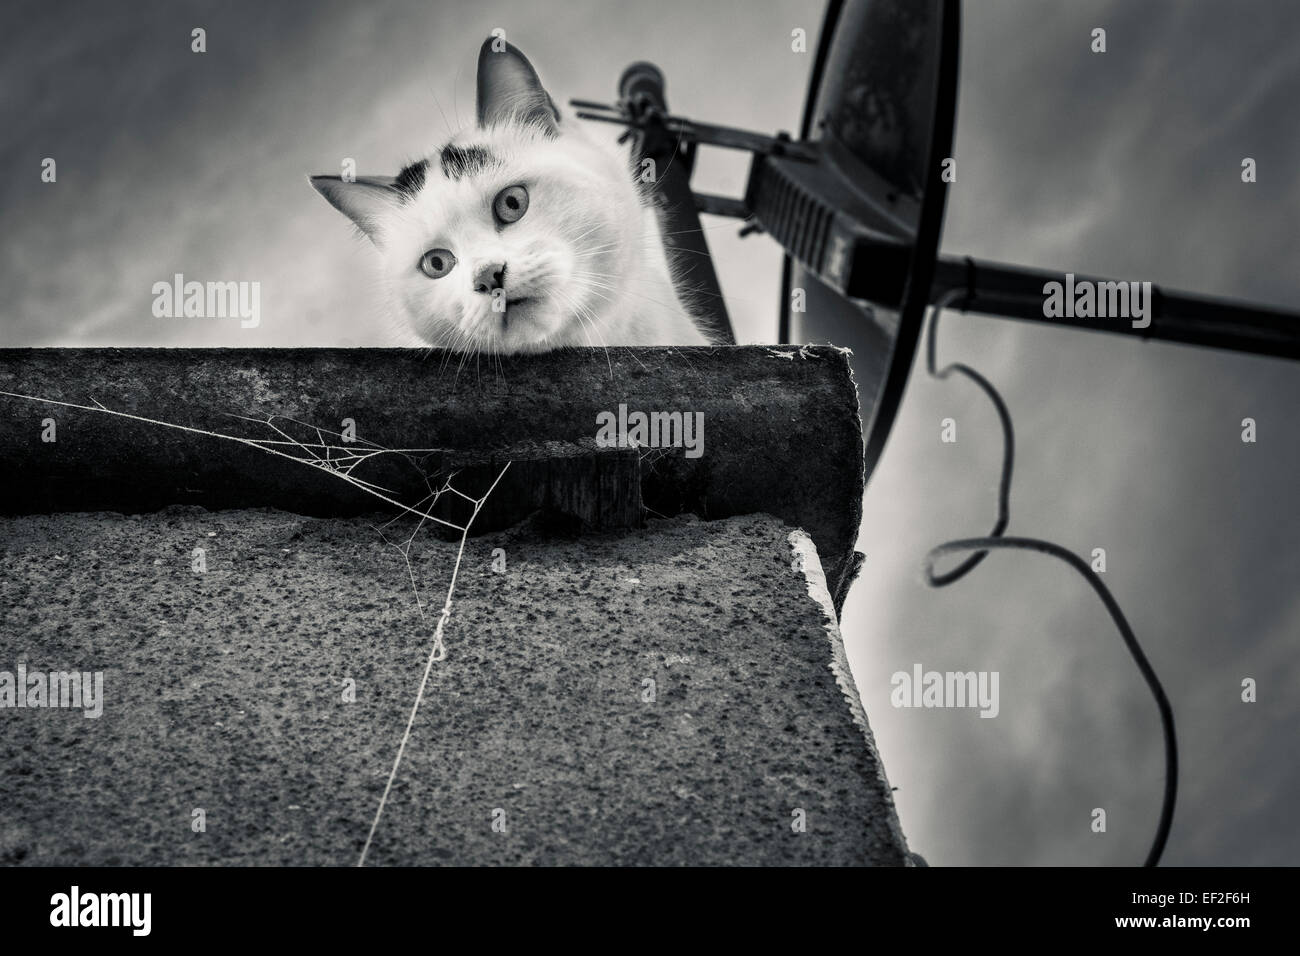 A gritty image of a cat on a roof looking down on the viewer - Stock Image